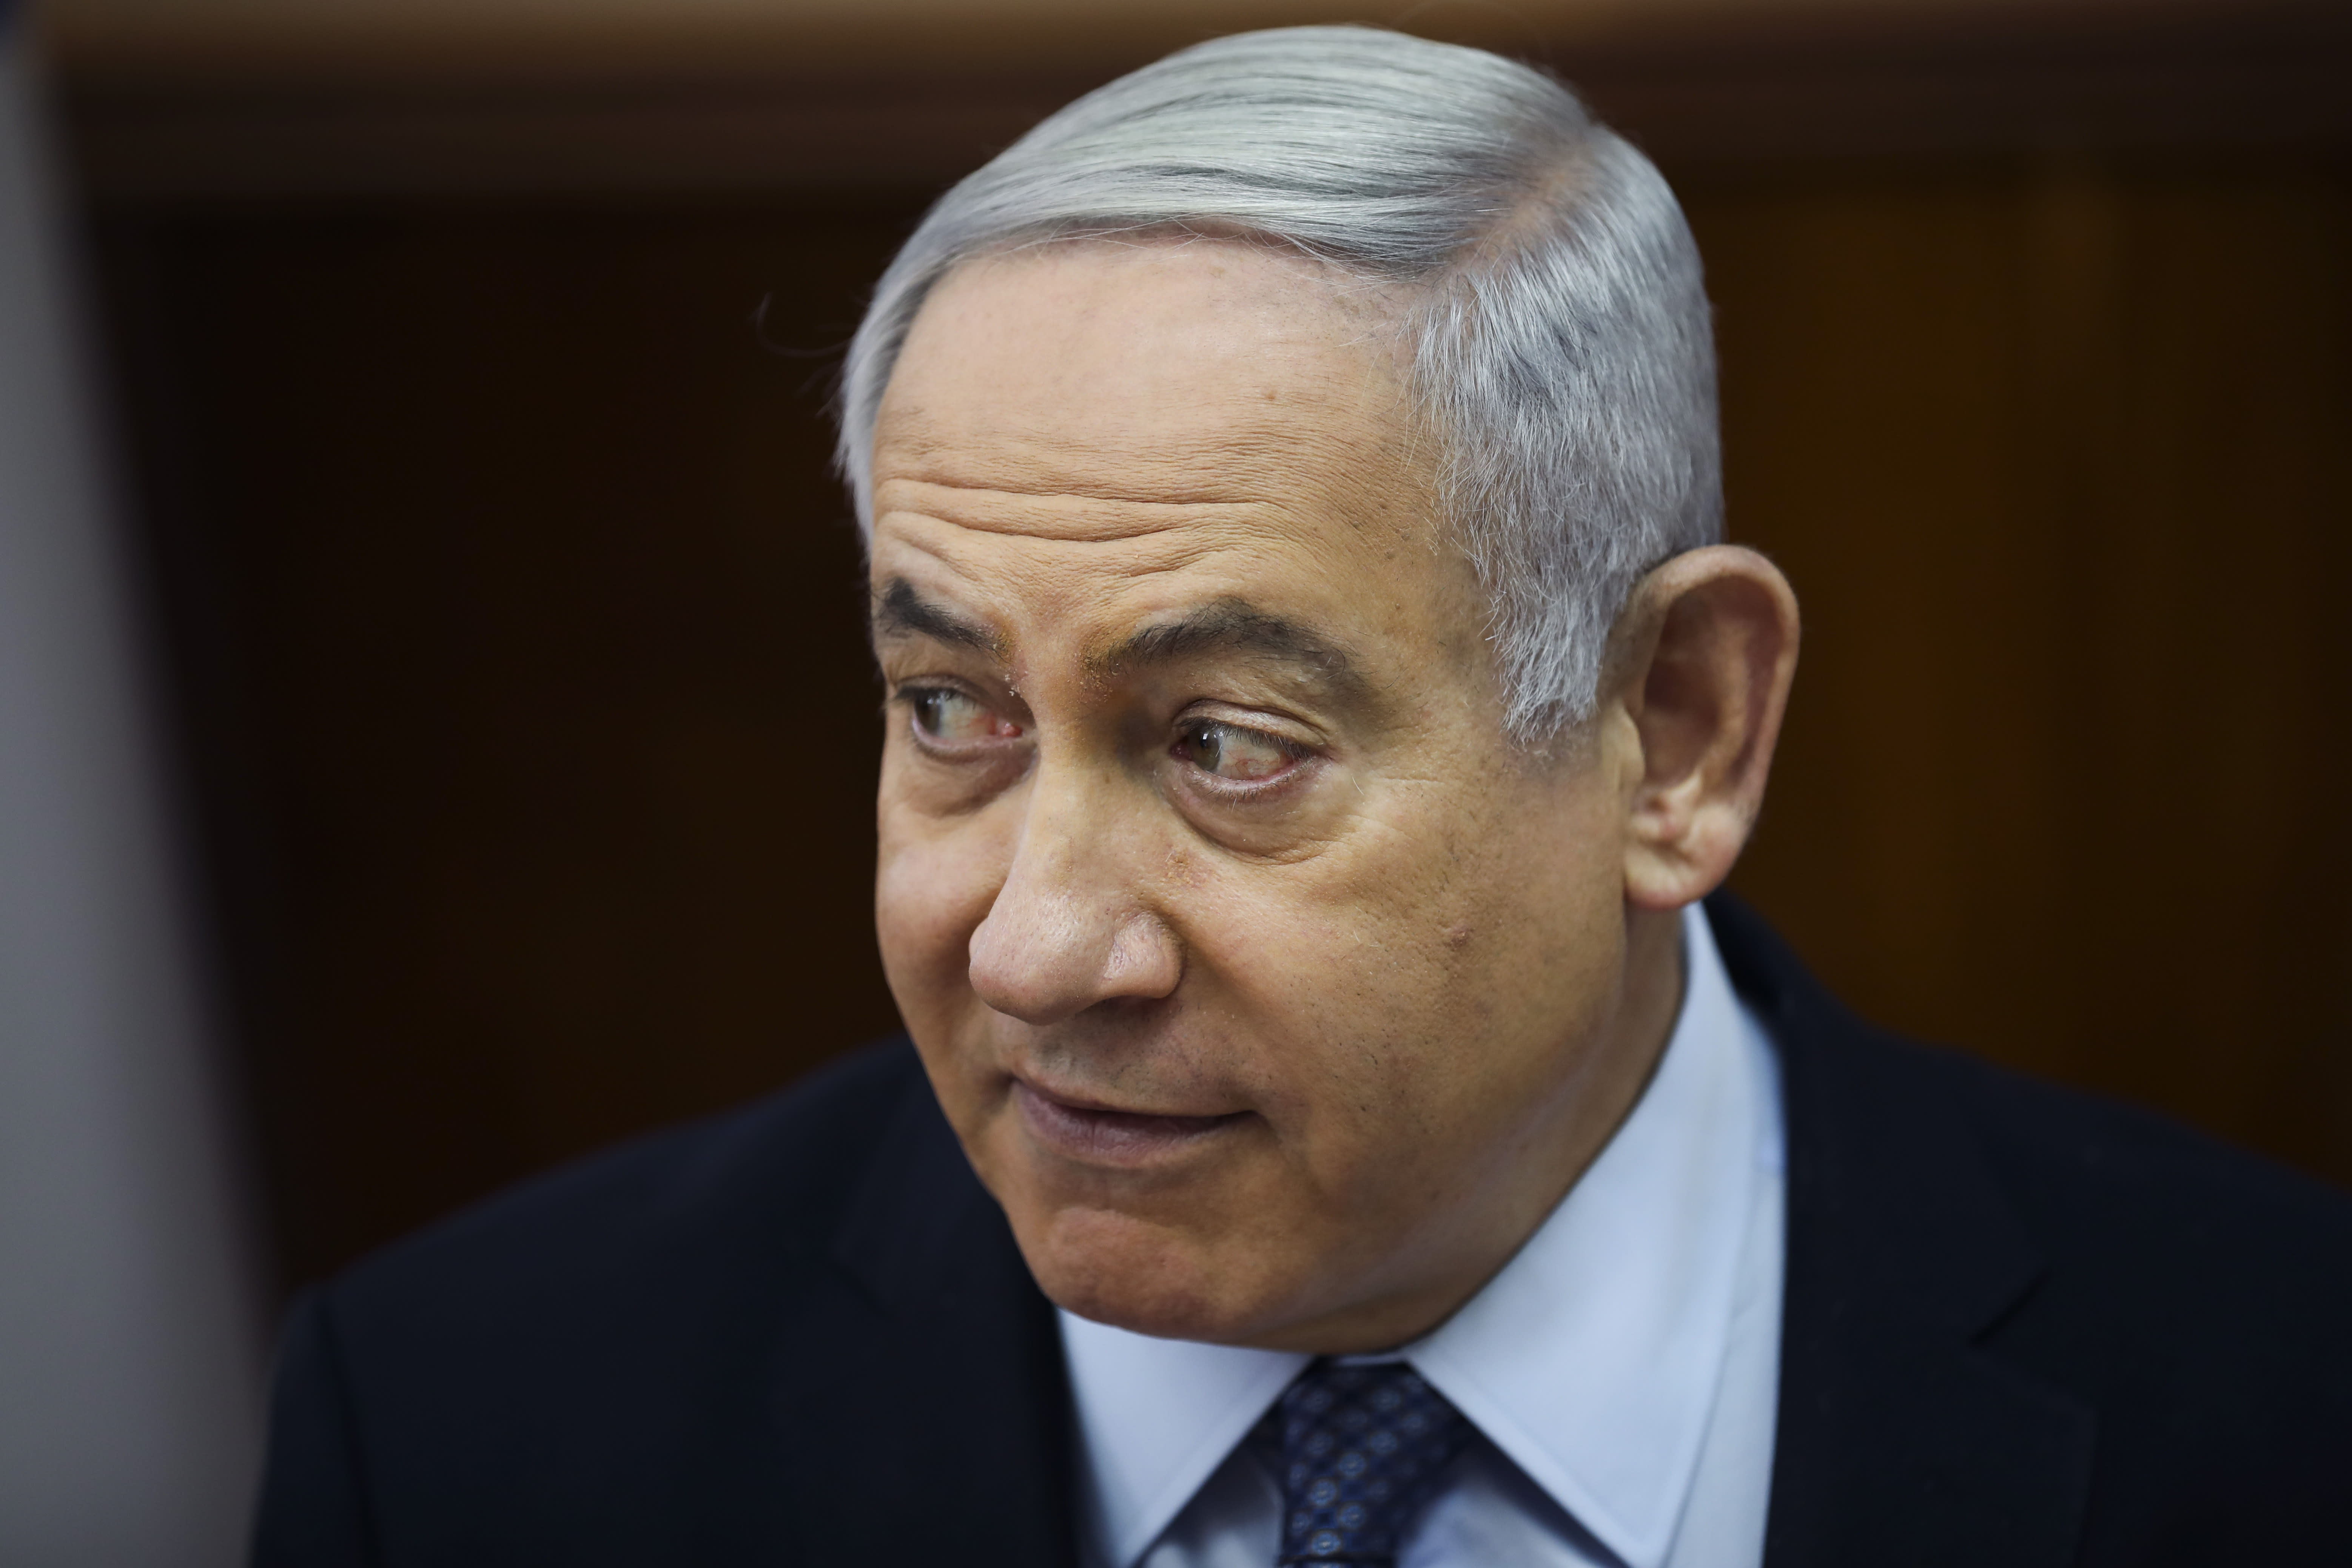 Israel's Prime Minister Benjamin Netanyahu charged with corruption